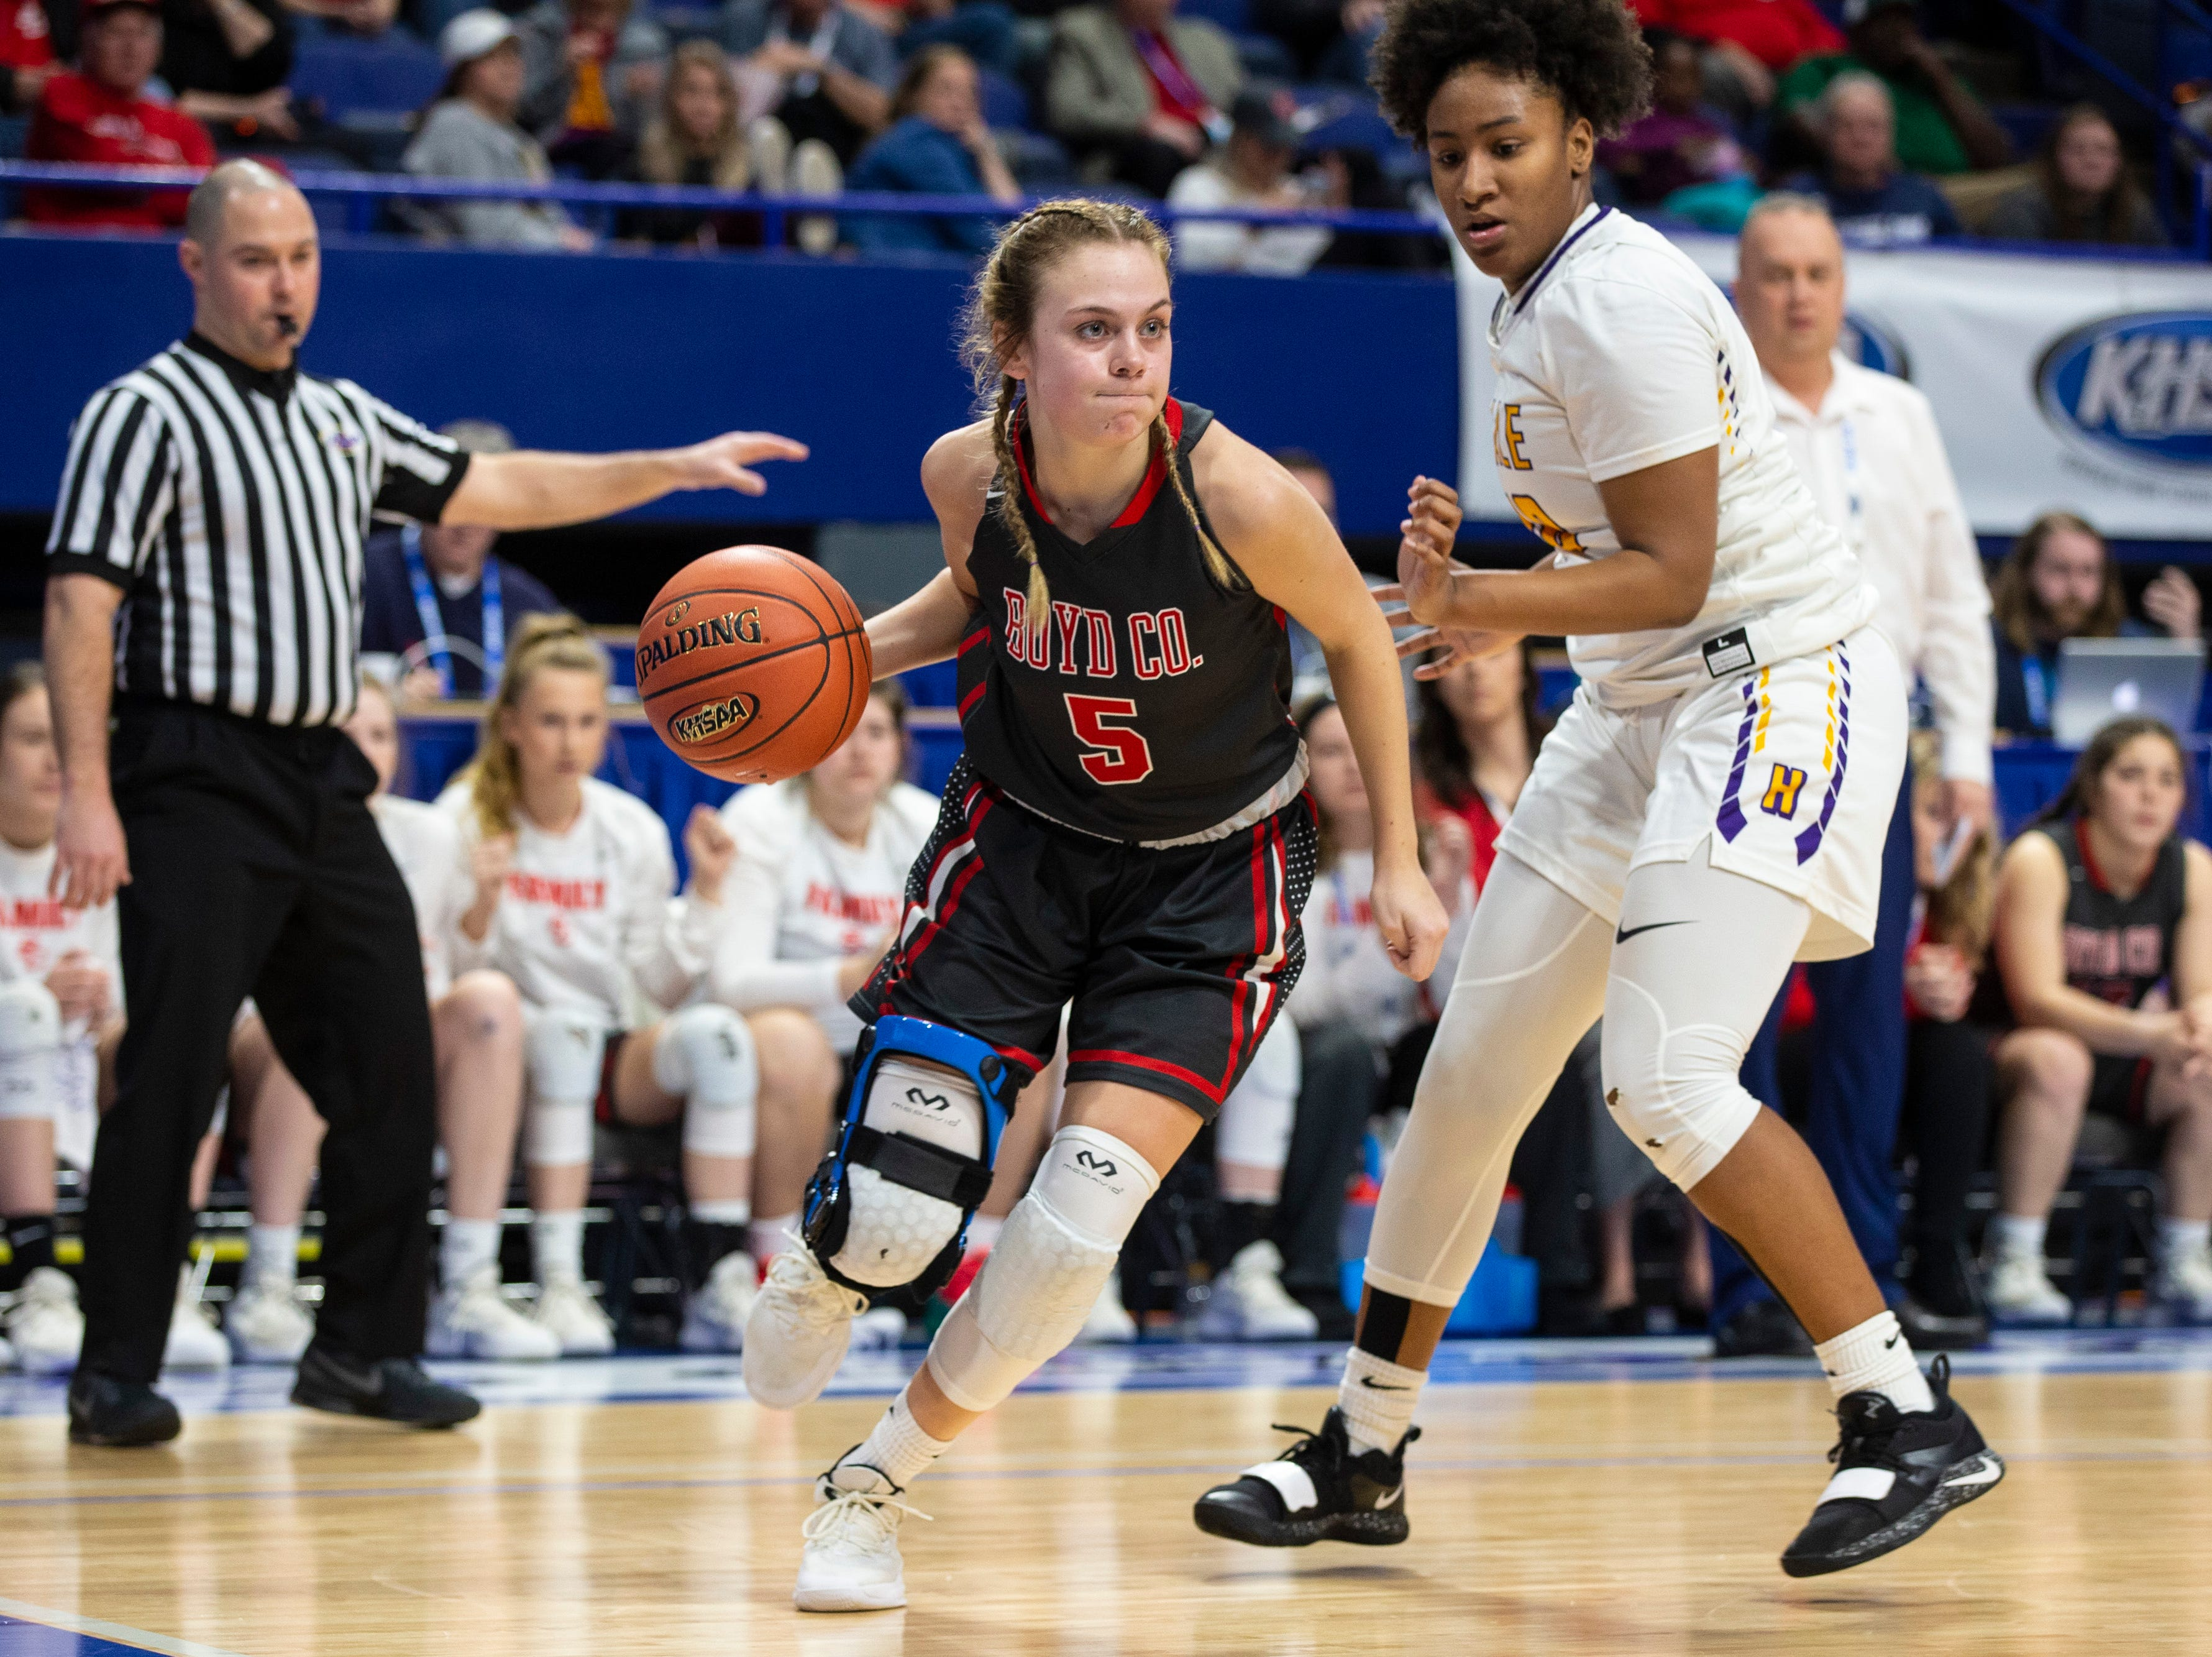 Boyd County's Bailey Rucker moves the ball up the court as Boyd County took on Louisville Male in the KHSAA state basketball tournament in Rupp Arena. Male eliminated Boyd County 74-56. March 14, 2019